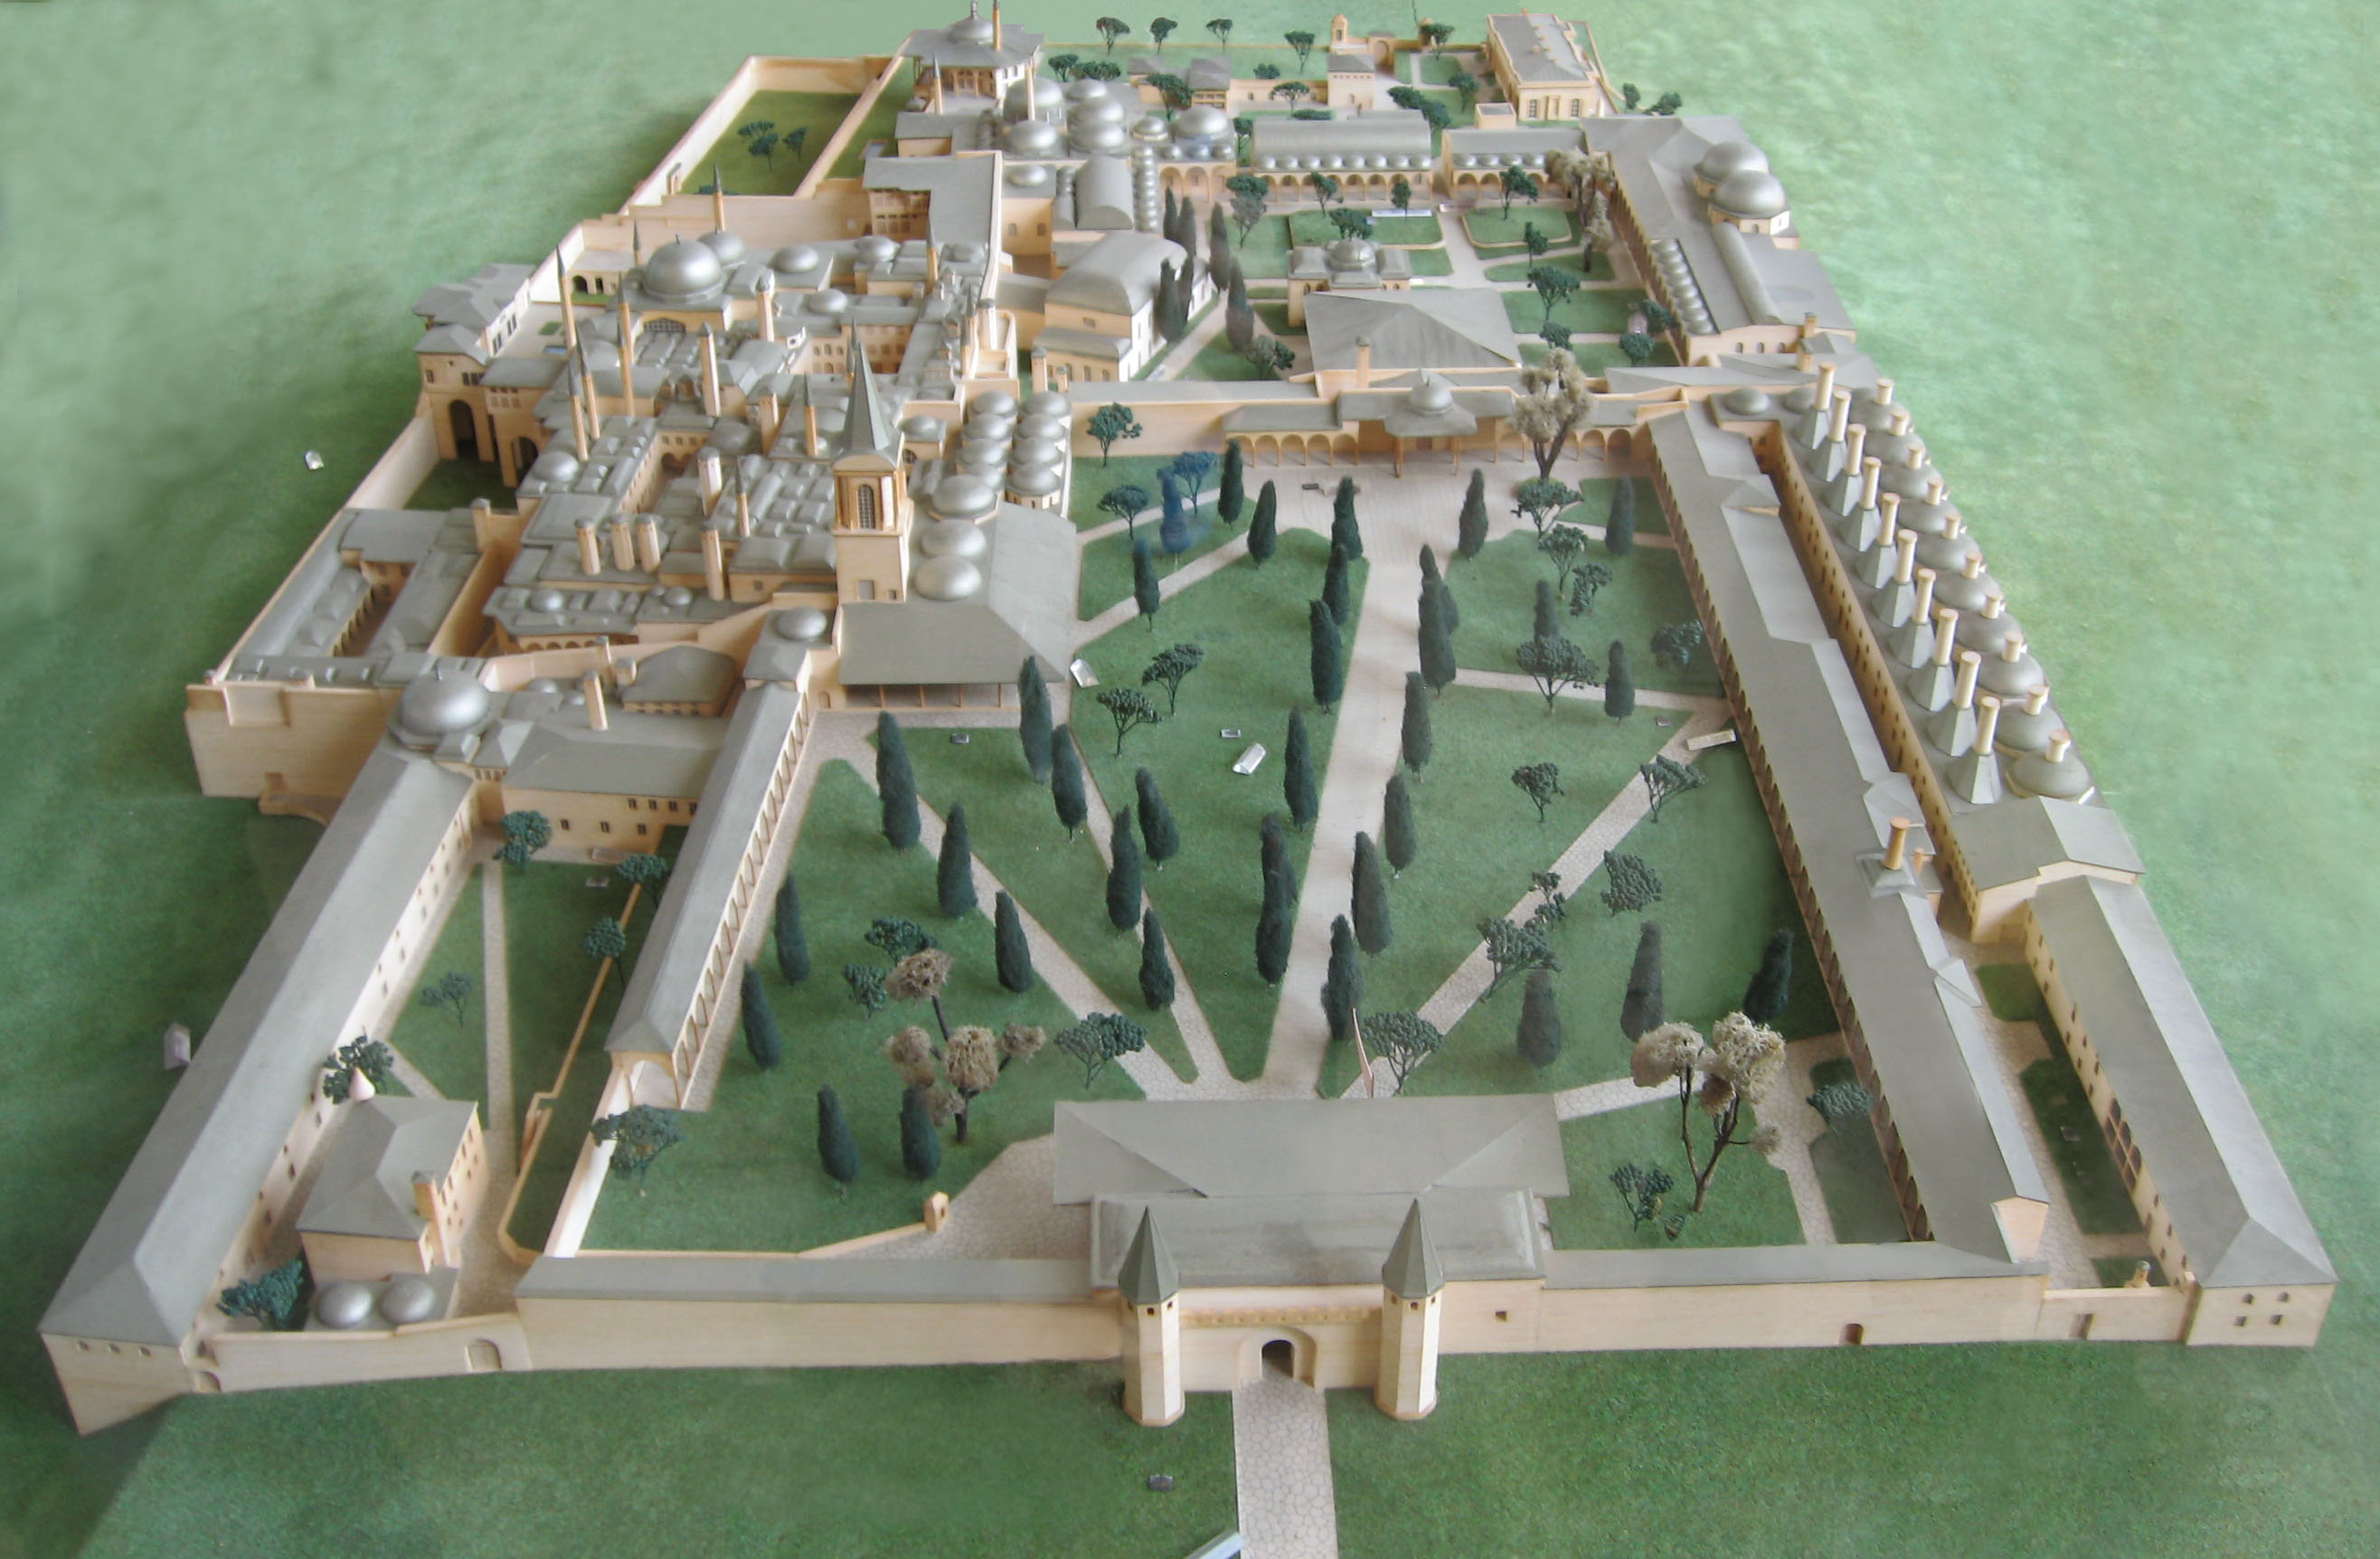 http://upload.wikimedia.org/wikipedia/commons/8/8e/Model_Topkapi_Istanbul_(4).JPG